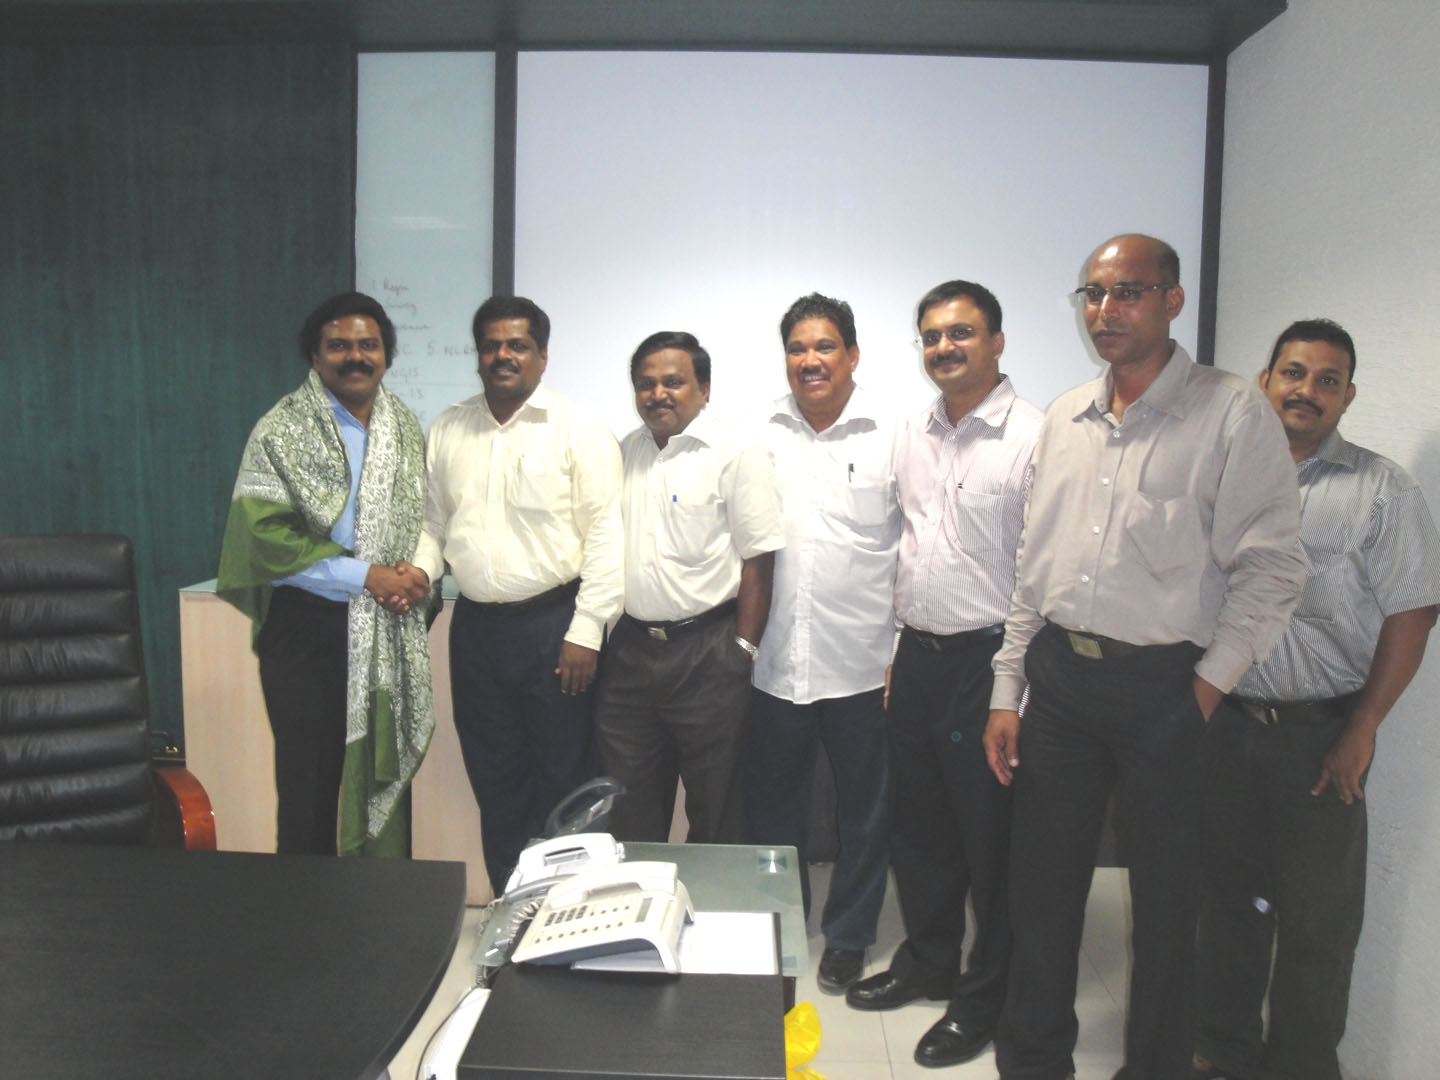 Seen above - Dr.Santosh Babu, Mr.Anto Peter, Mr.Anandan, Dr.Arul Natarajan, T.N.C.Venkata Rangan, Mr.Paul, Mr.Benny